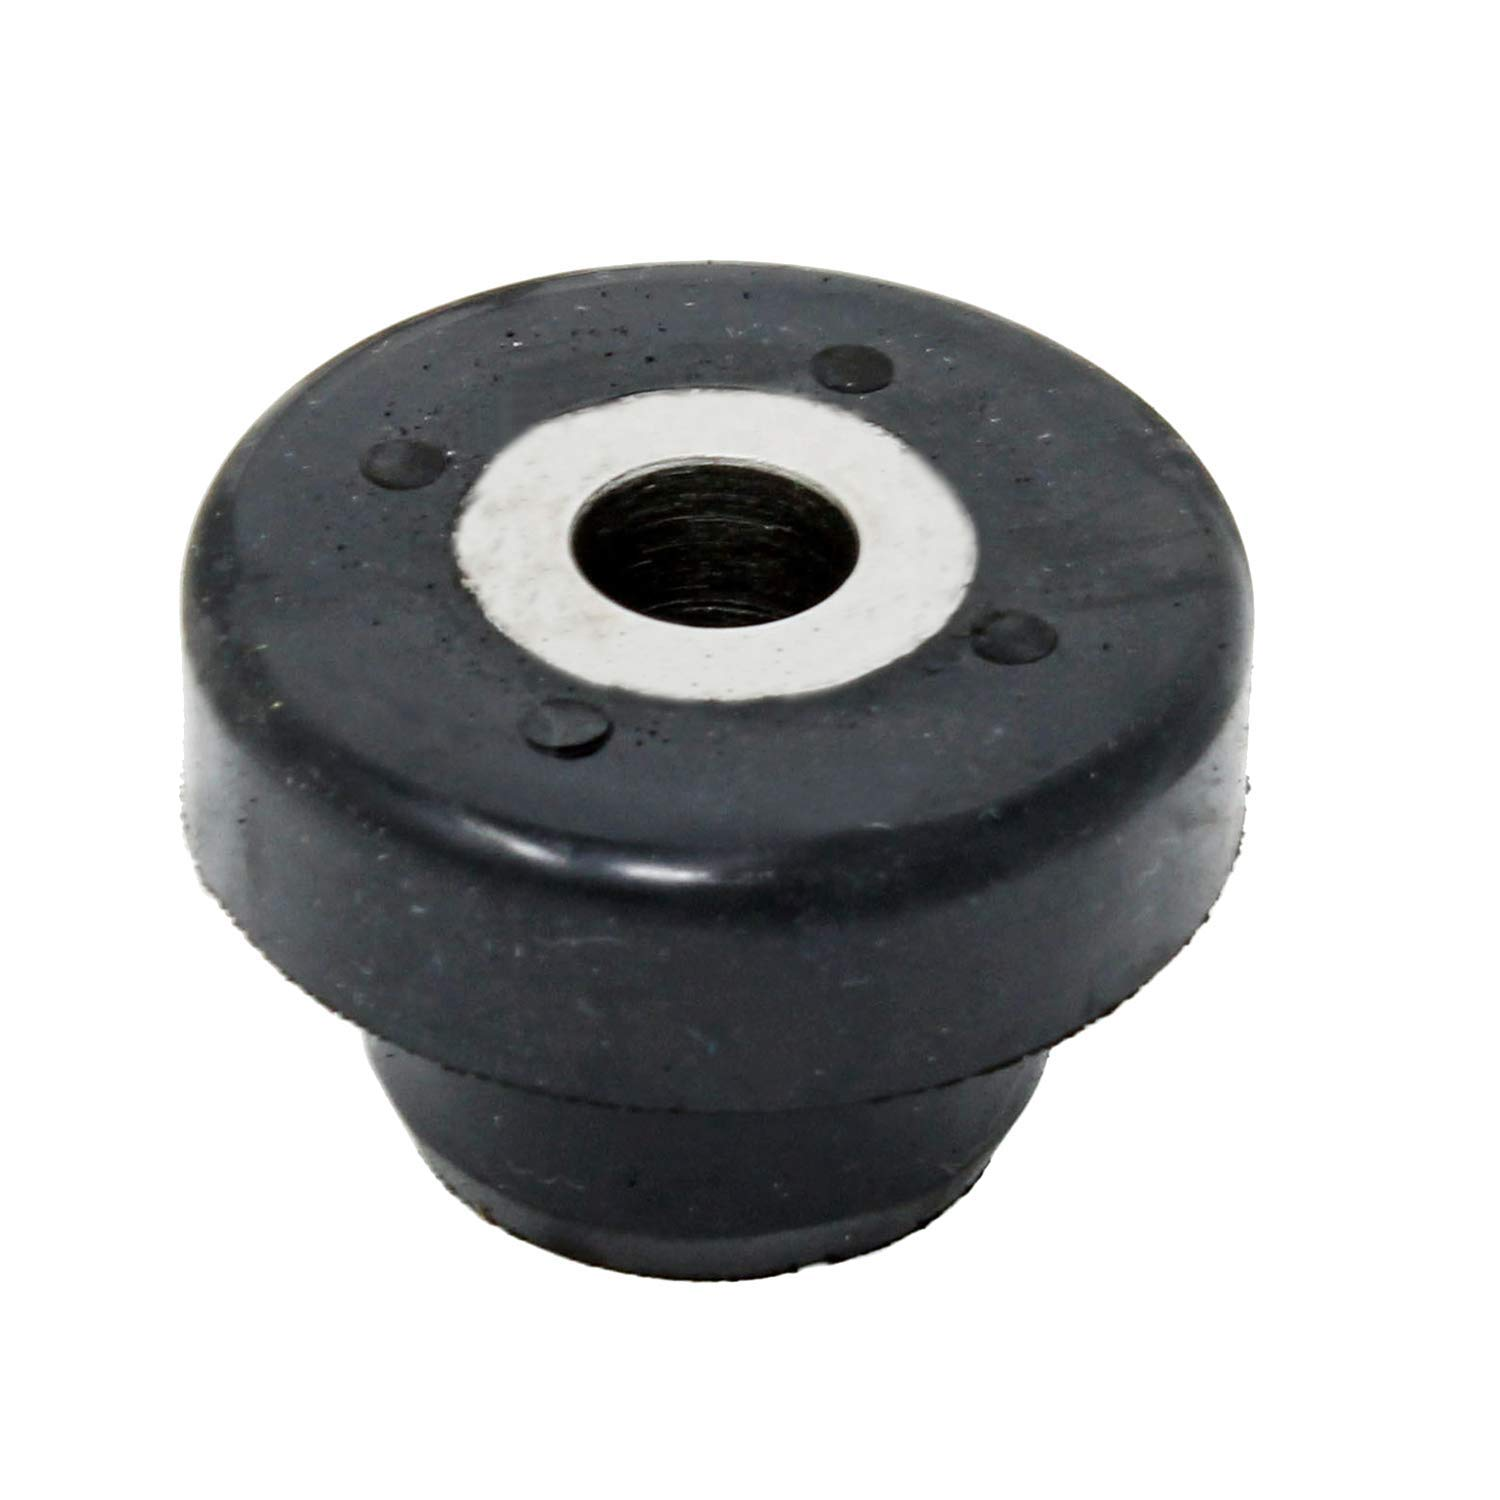 Mover Parts Vibration Damper 6560633 for Bobcat 731 732 741 742 743 751 753 763 773 7753 843 853 863 864 953 963 S100 S130 S150 S160 S175 S185 S205 S220 S250 S300 S330 T110 T140 T180,T190 T200 T250